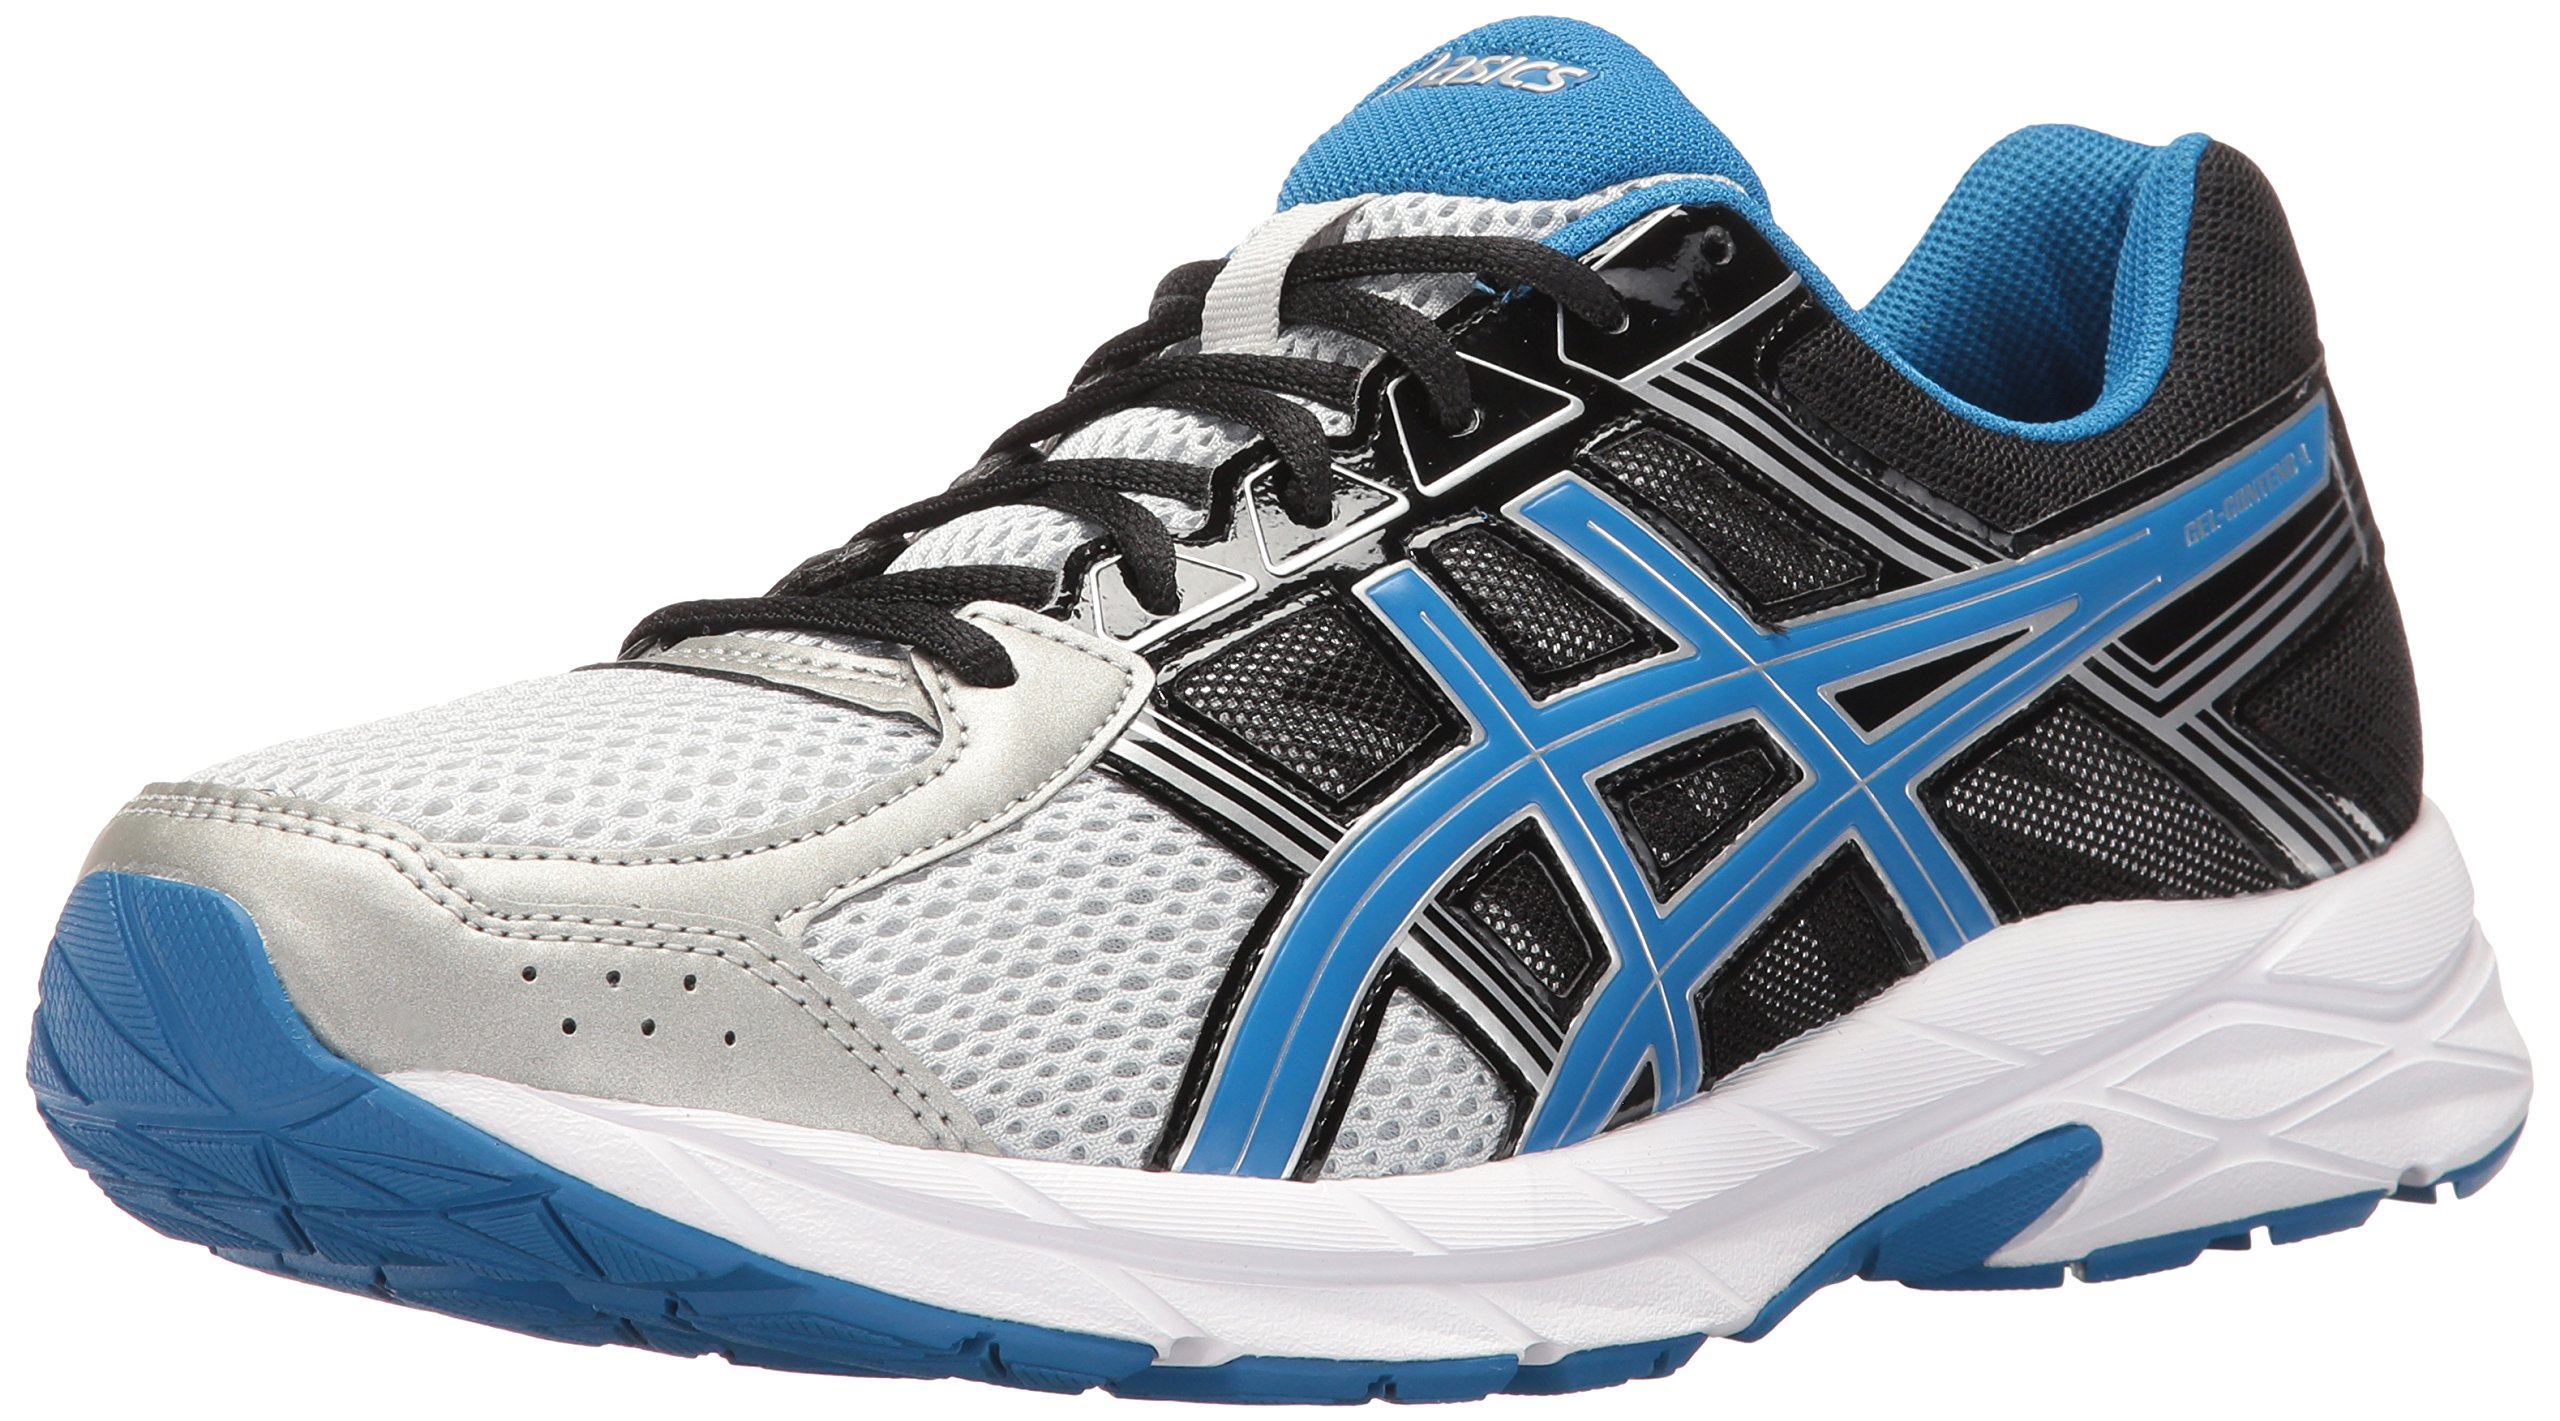 ASICS Men's Gel-Contend 4 Running Shoe, Silver/Classic Blue/Black, 7 M US by ASICS (Image #1)